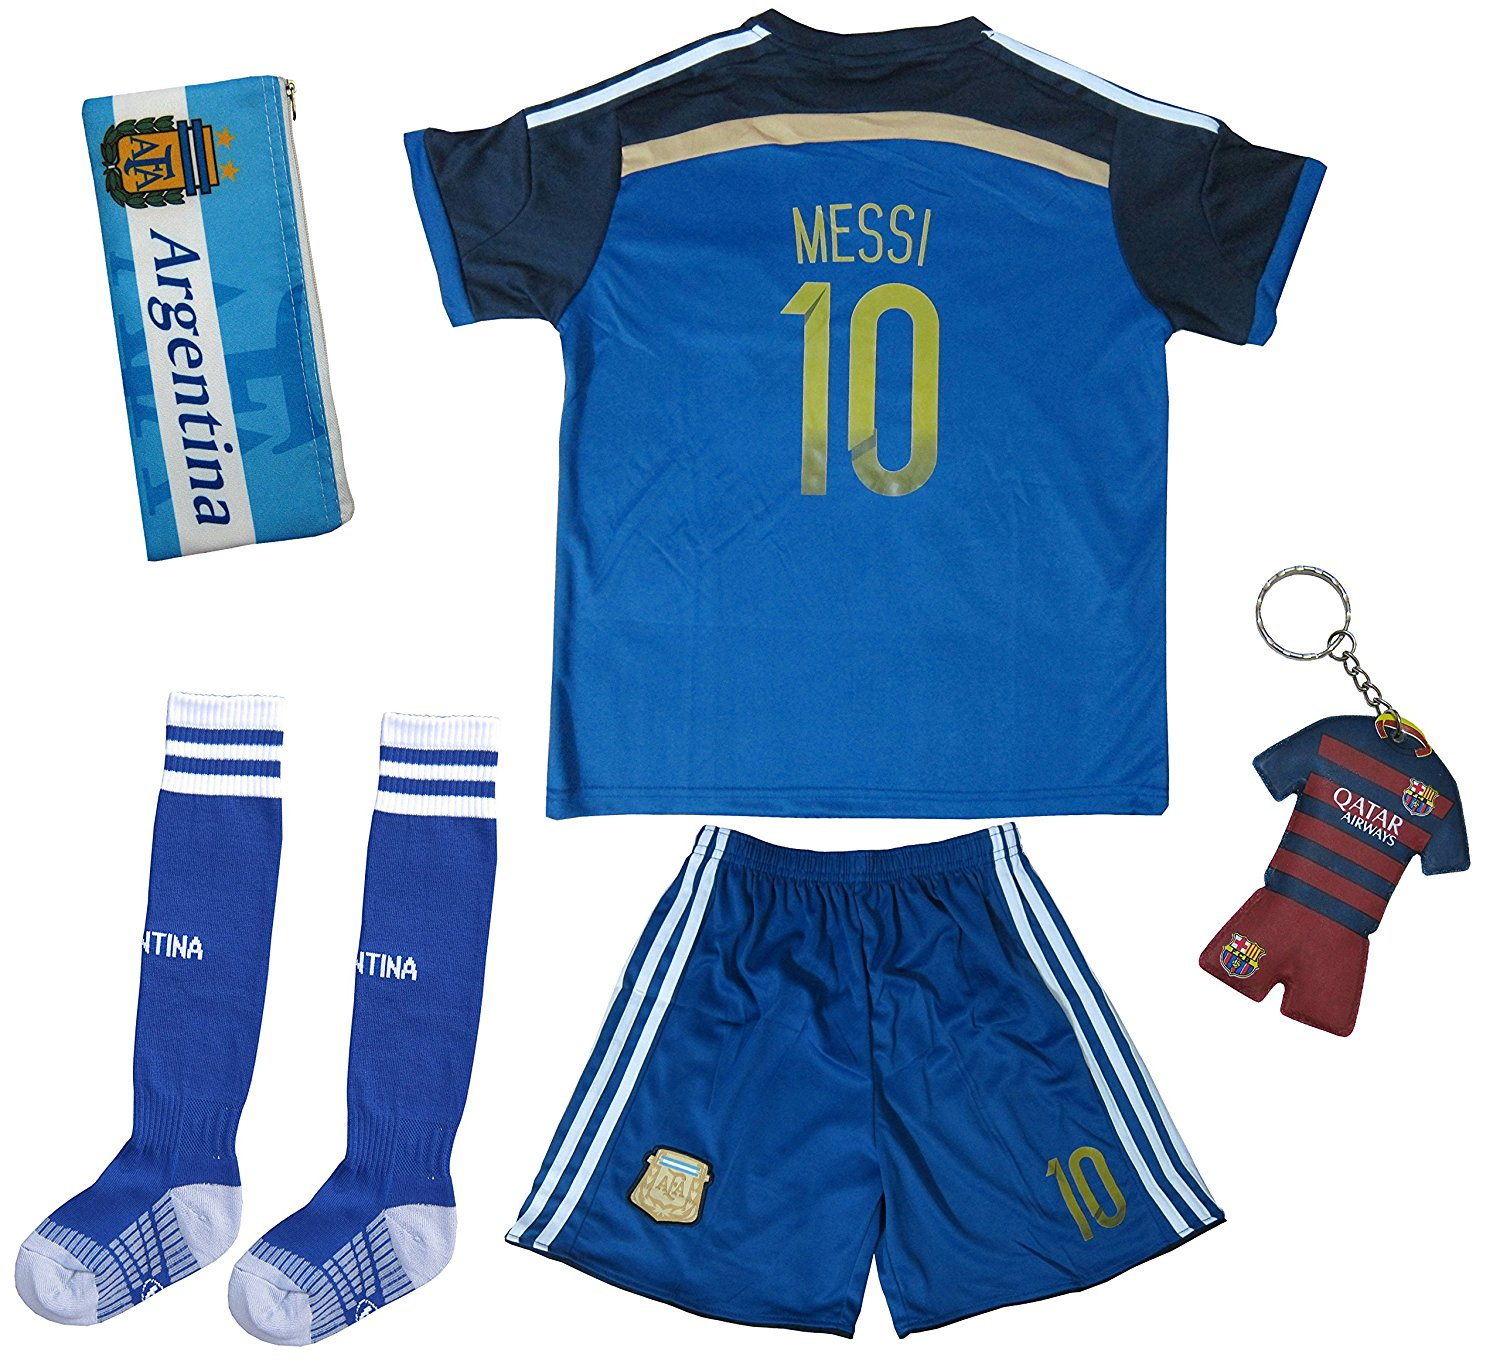 d36122785 2017 Argentina LIONEL MESSI  10 Away Soccer Kids Jersey   Short Set Youth  Sizes